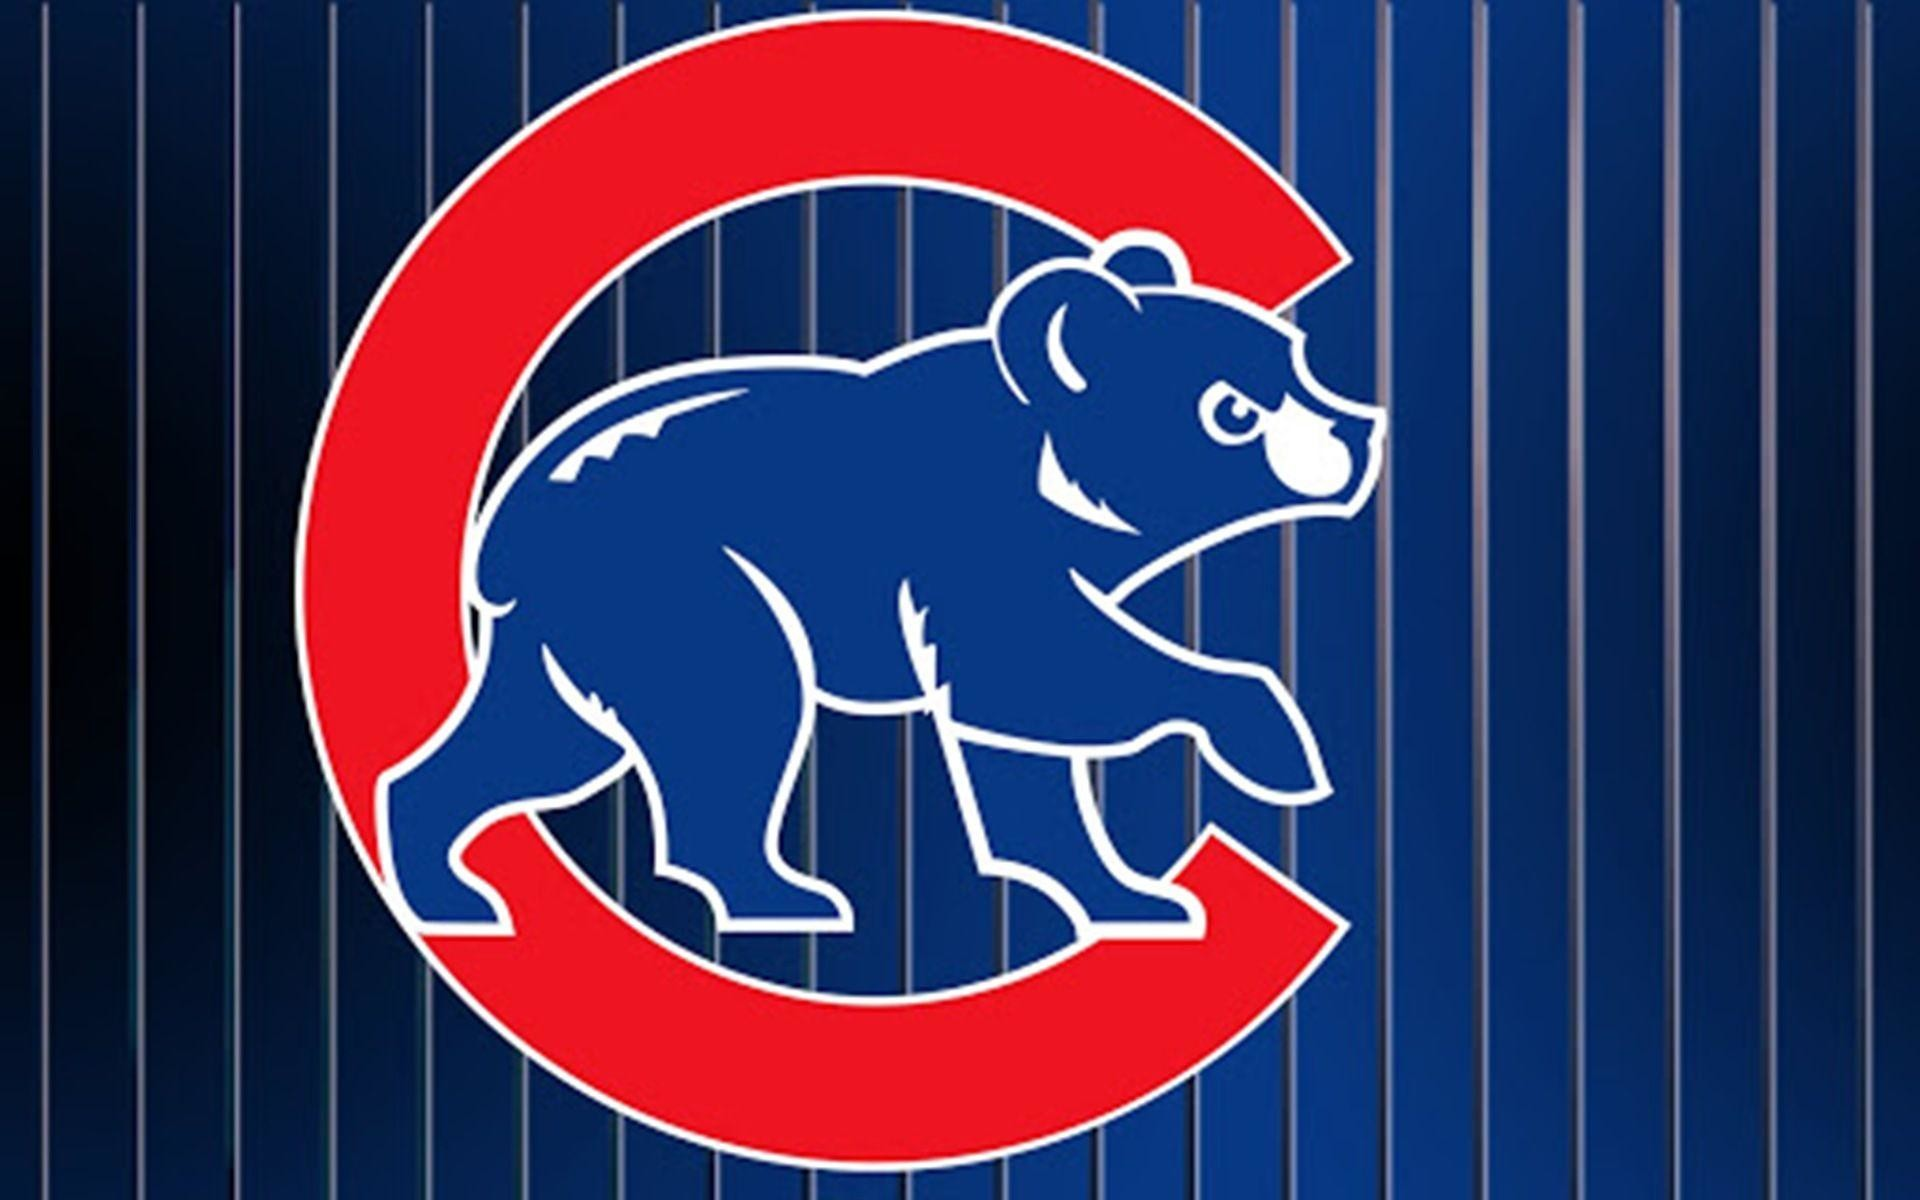 1920x1200 Chicago Cubs Wallpaper Team Sport Wallpapers HD - Wallpapers HD